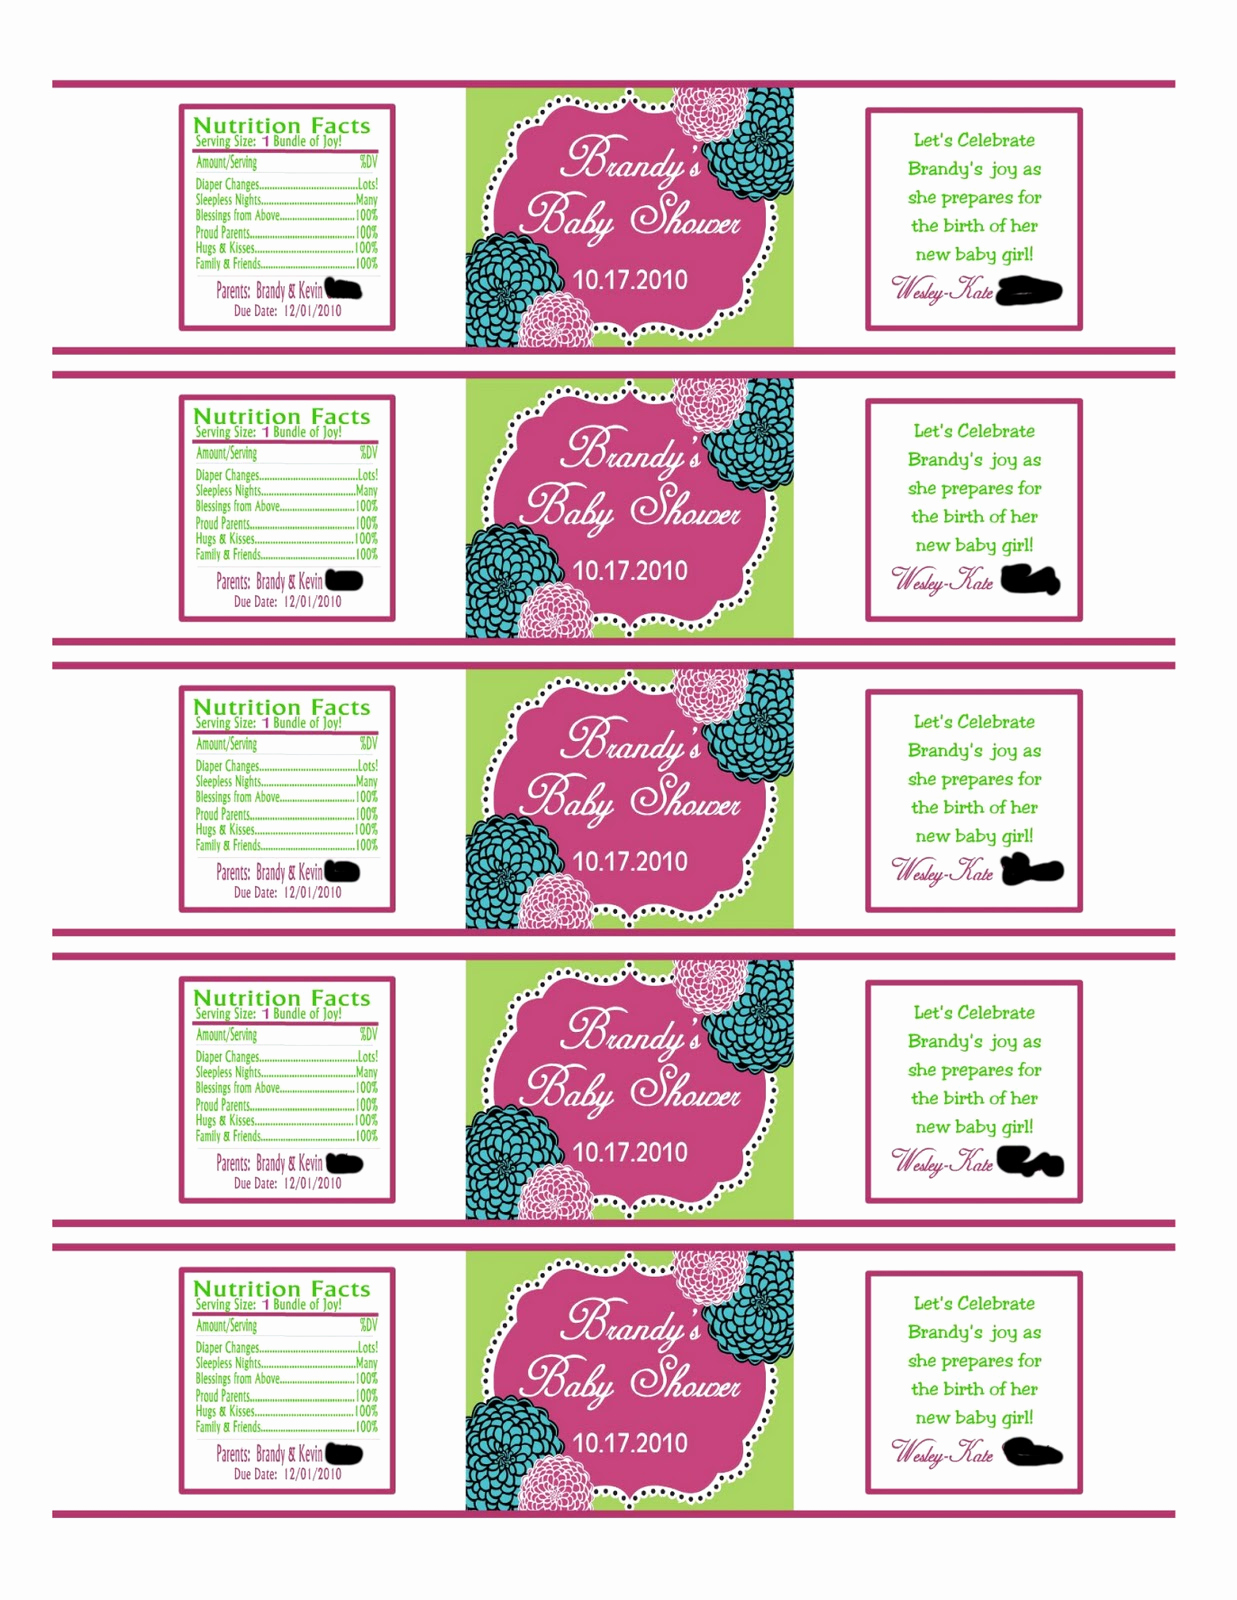 Water Bottle Labels Free Template Awesome southern Inspirations How to Make Water Bottle Labels